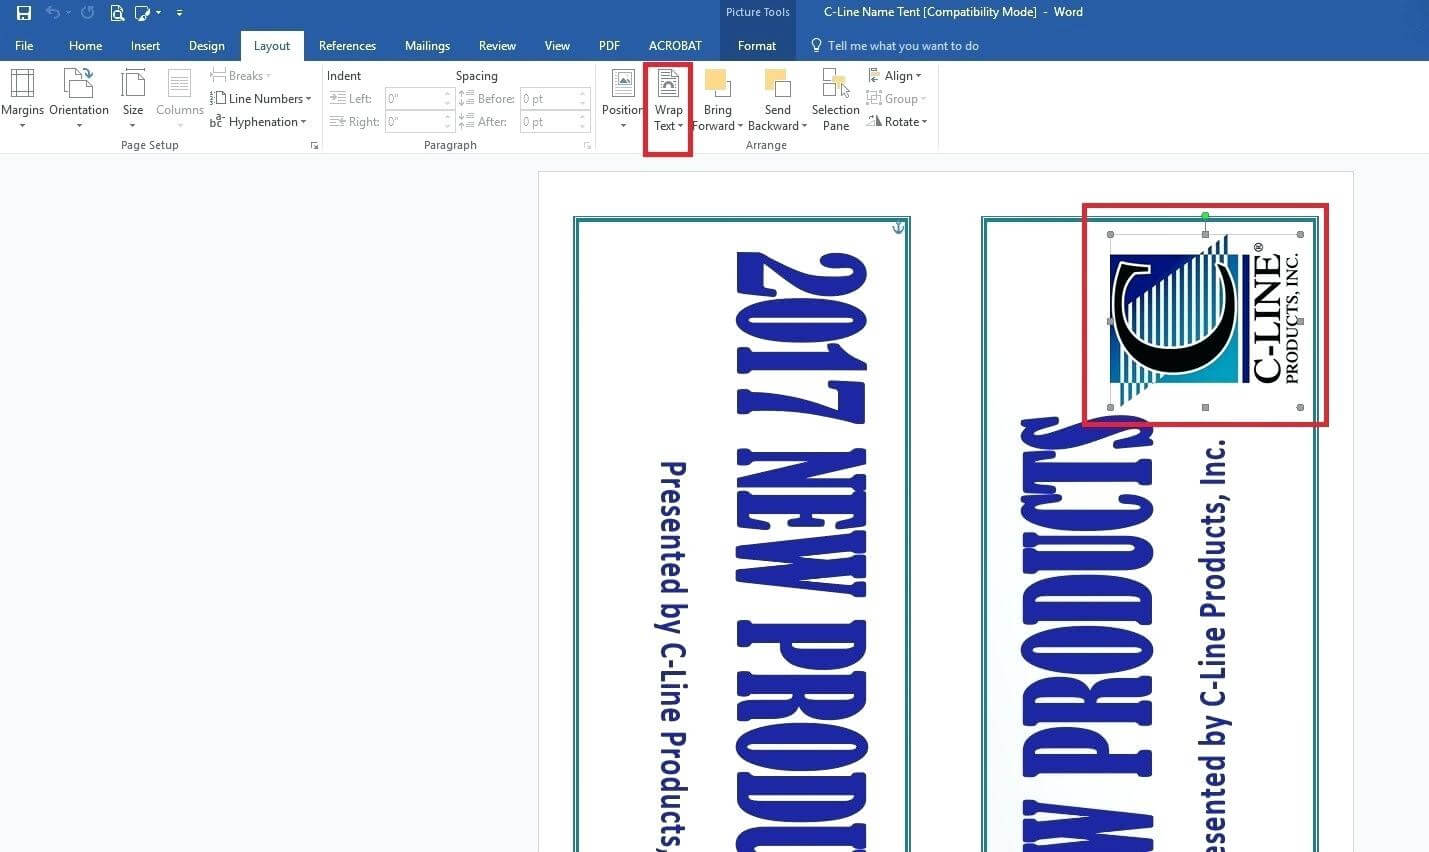 Template: How To Create Large Name Tent Cards C Line throughout Tent Name Card Template Word